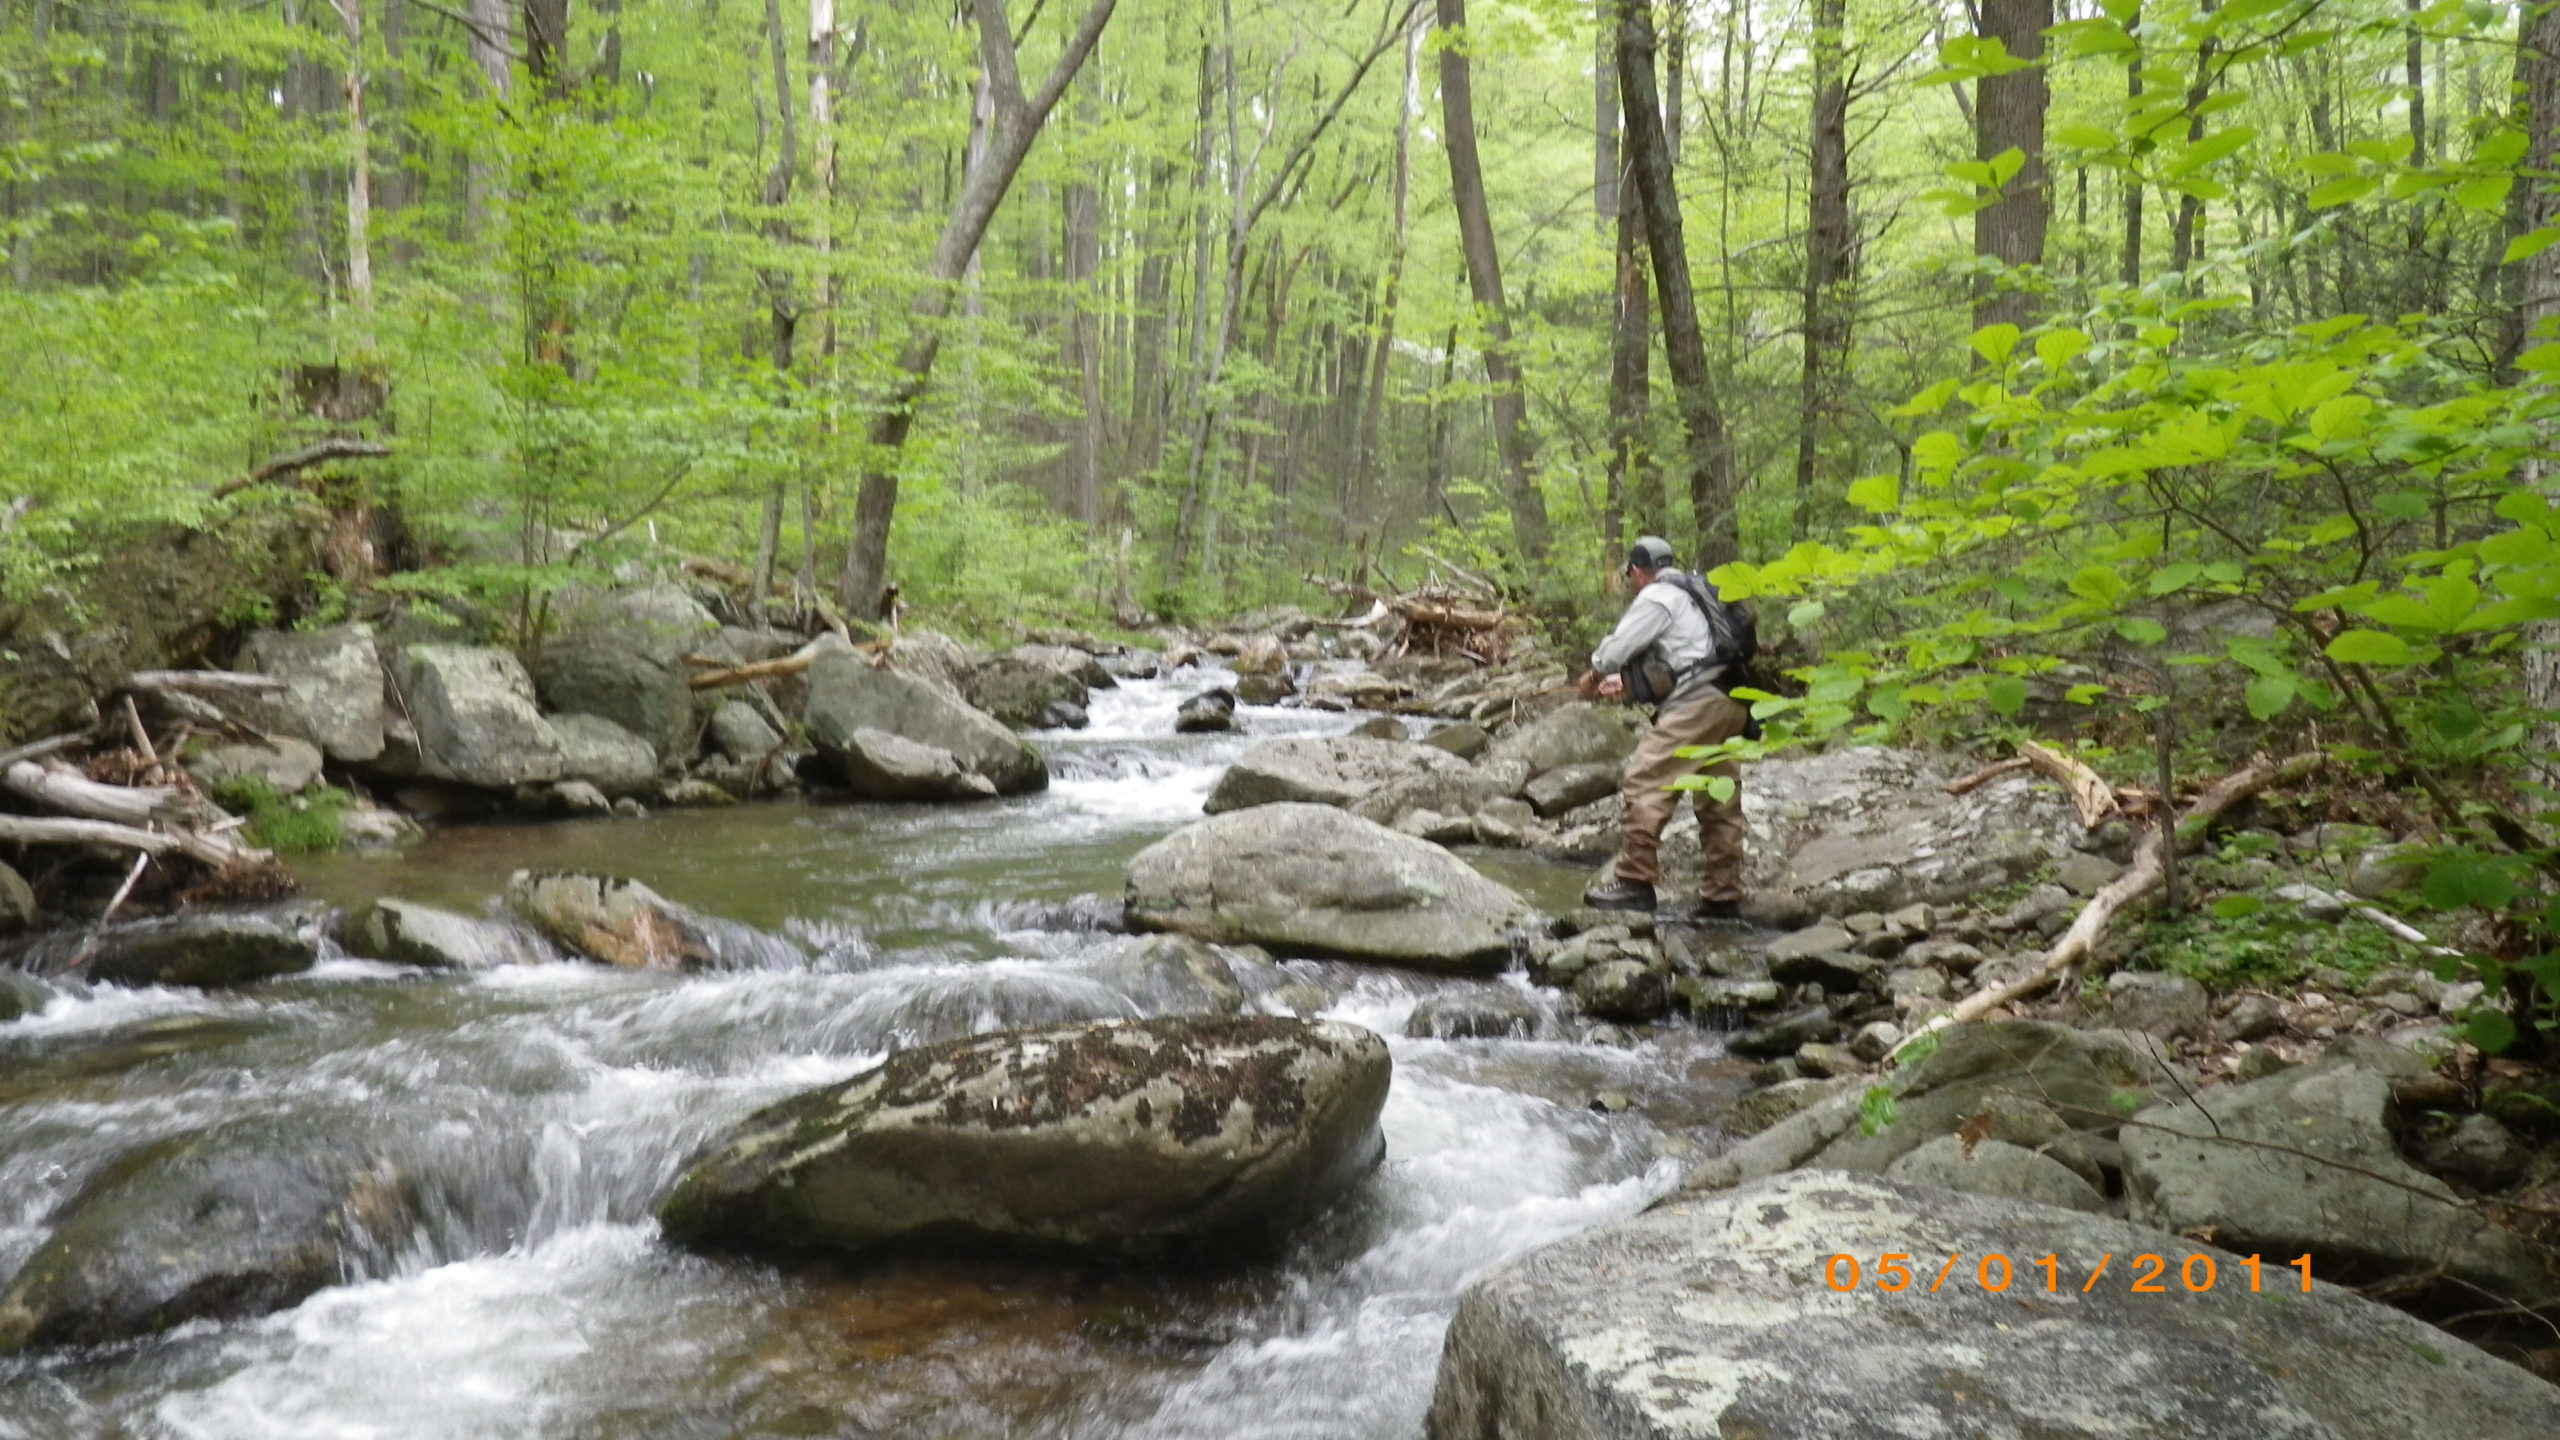 F;ly fishing on the Rose River at Graves Mountain farm in the VA Blue Ridge